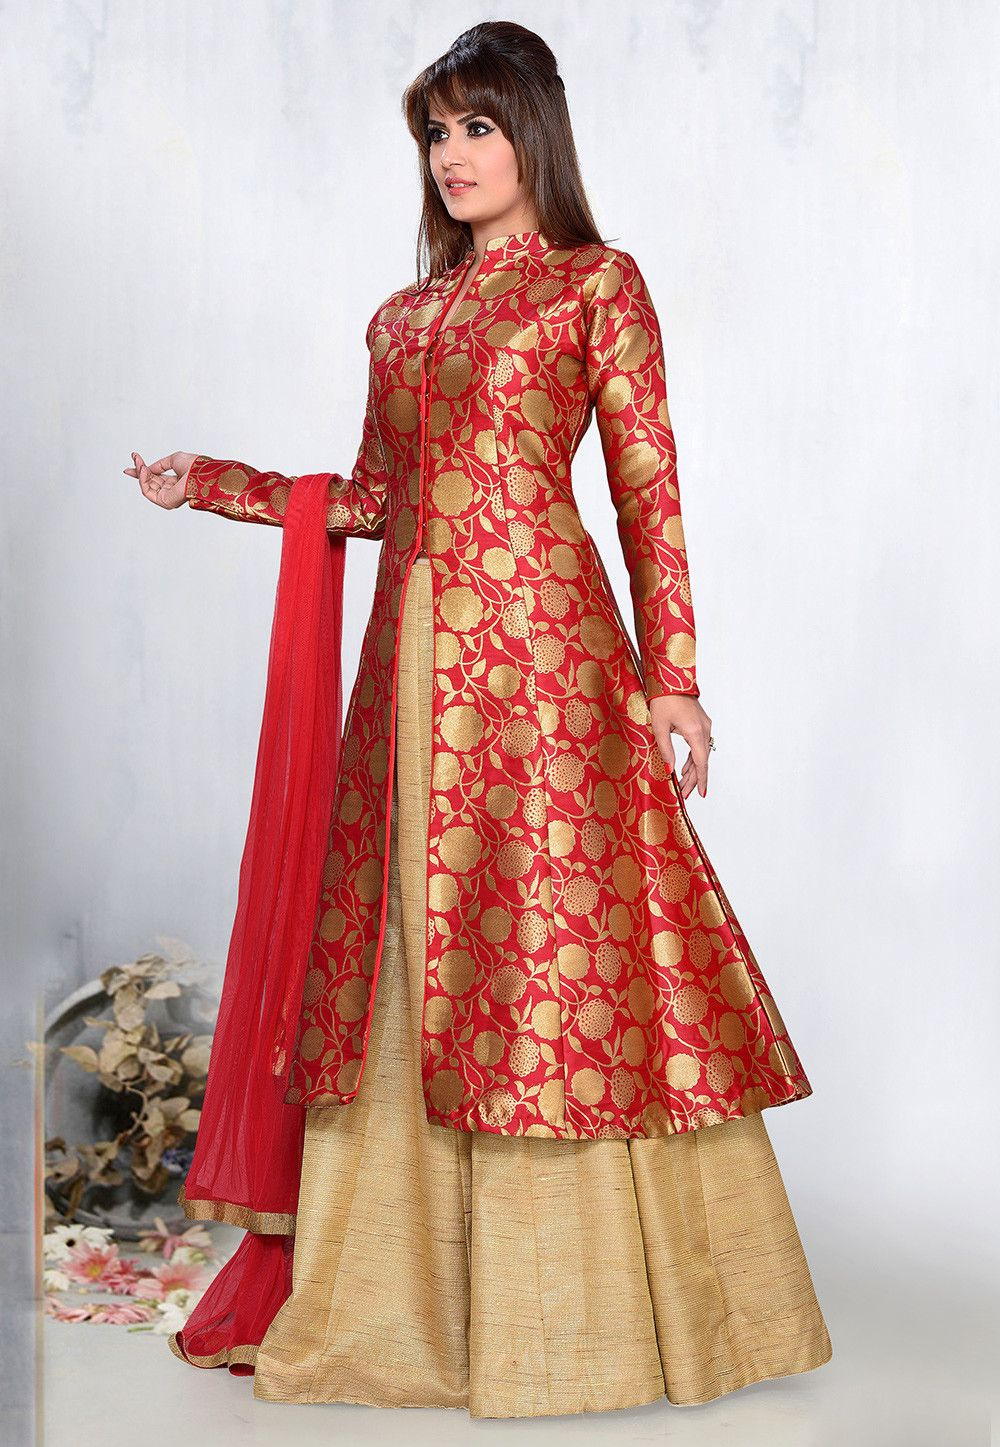 Image result for red brocade lehenga